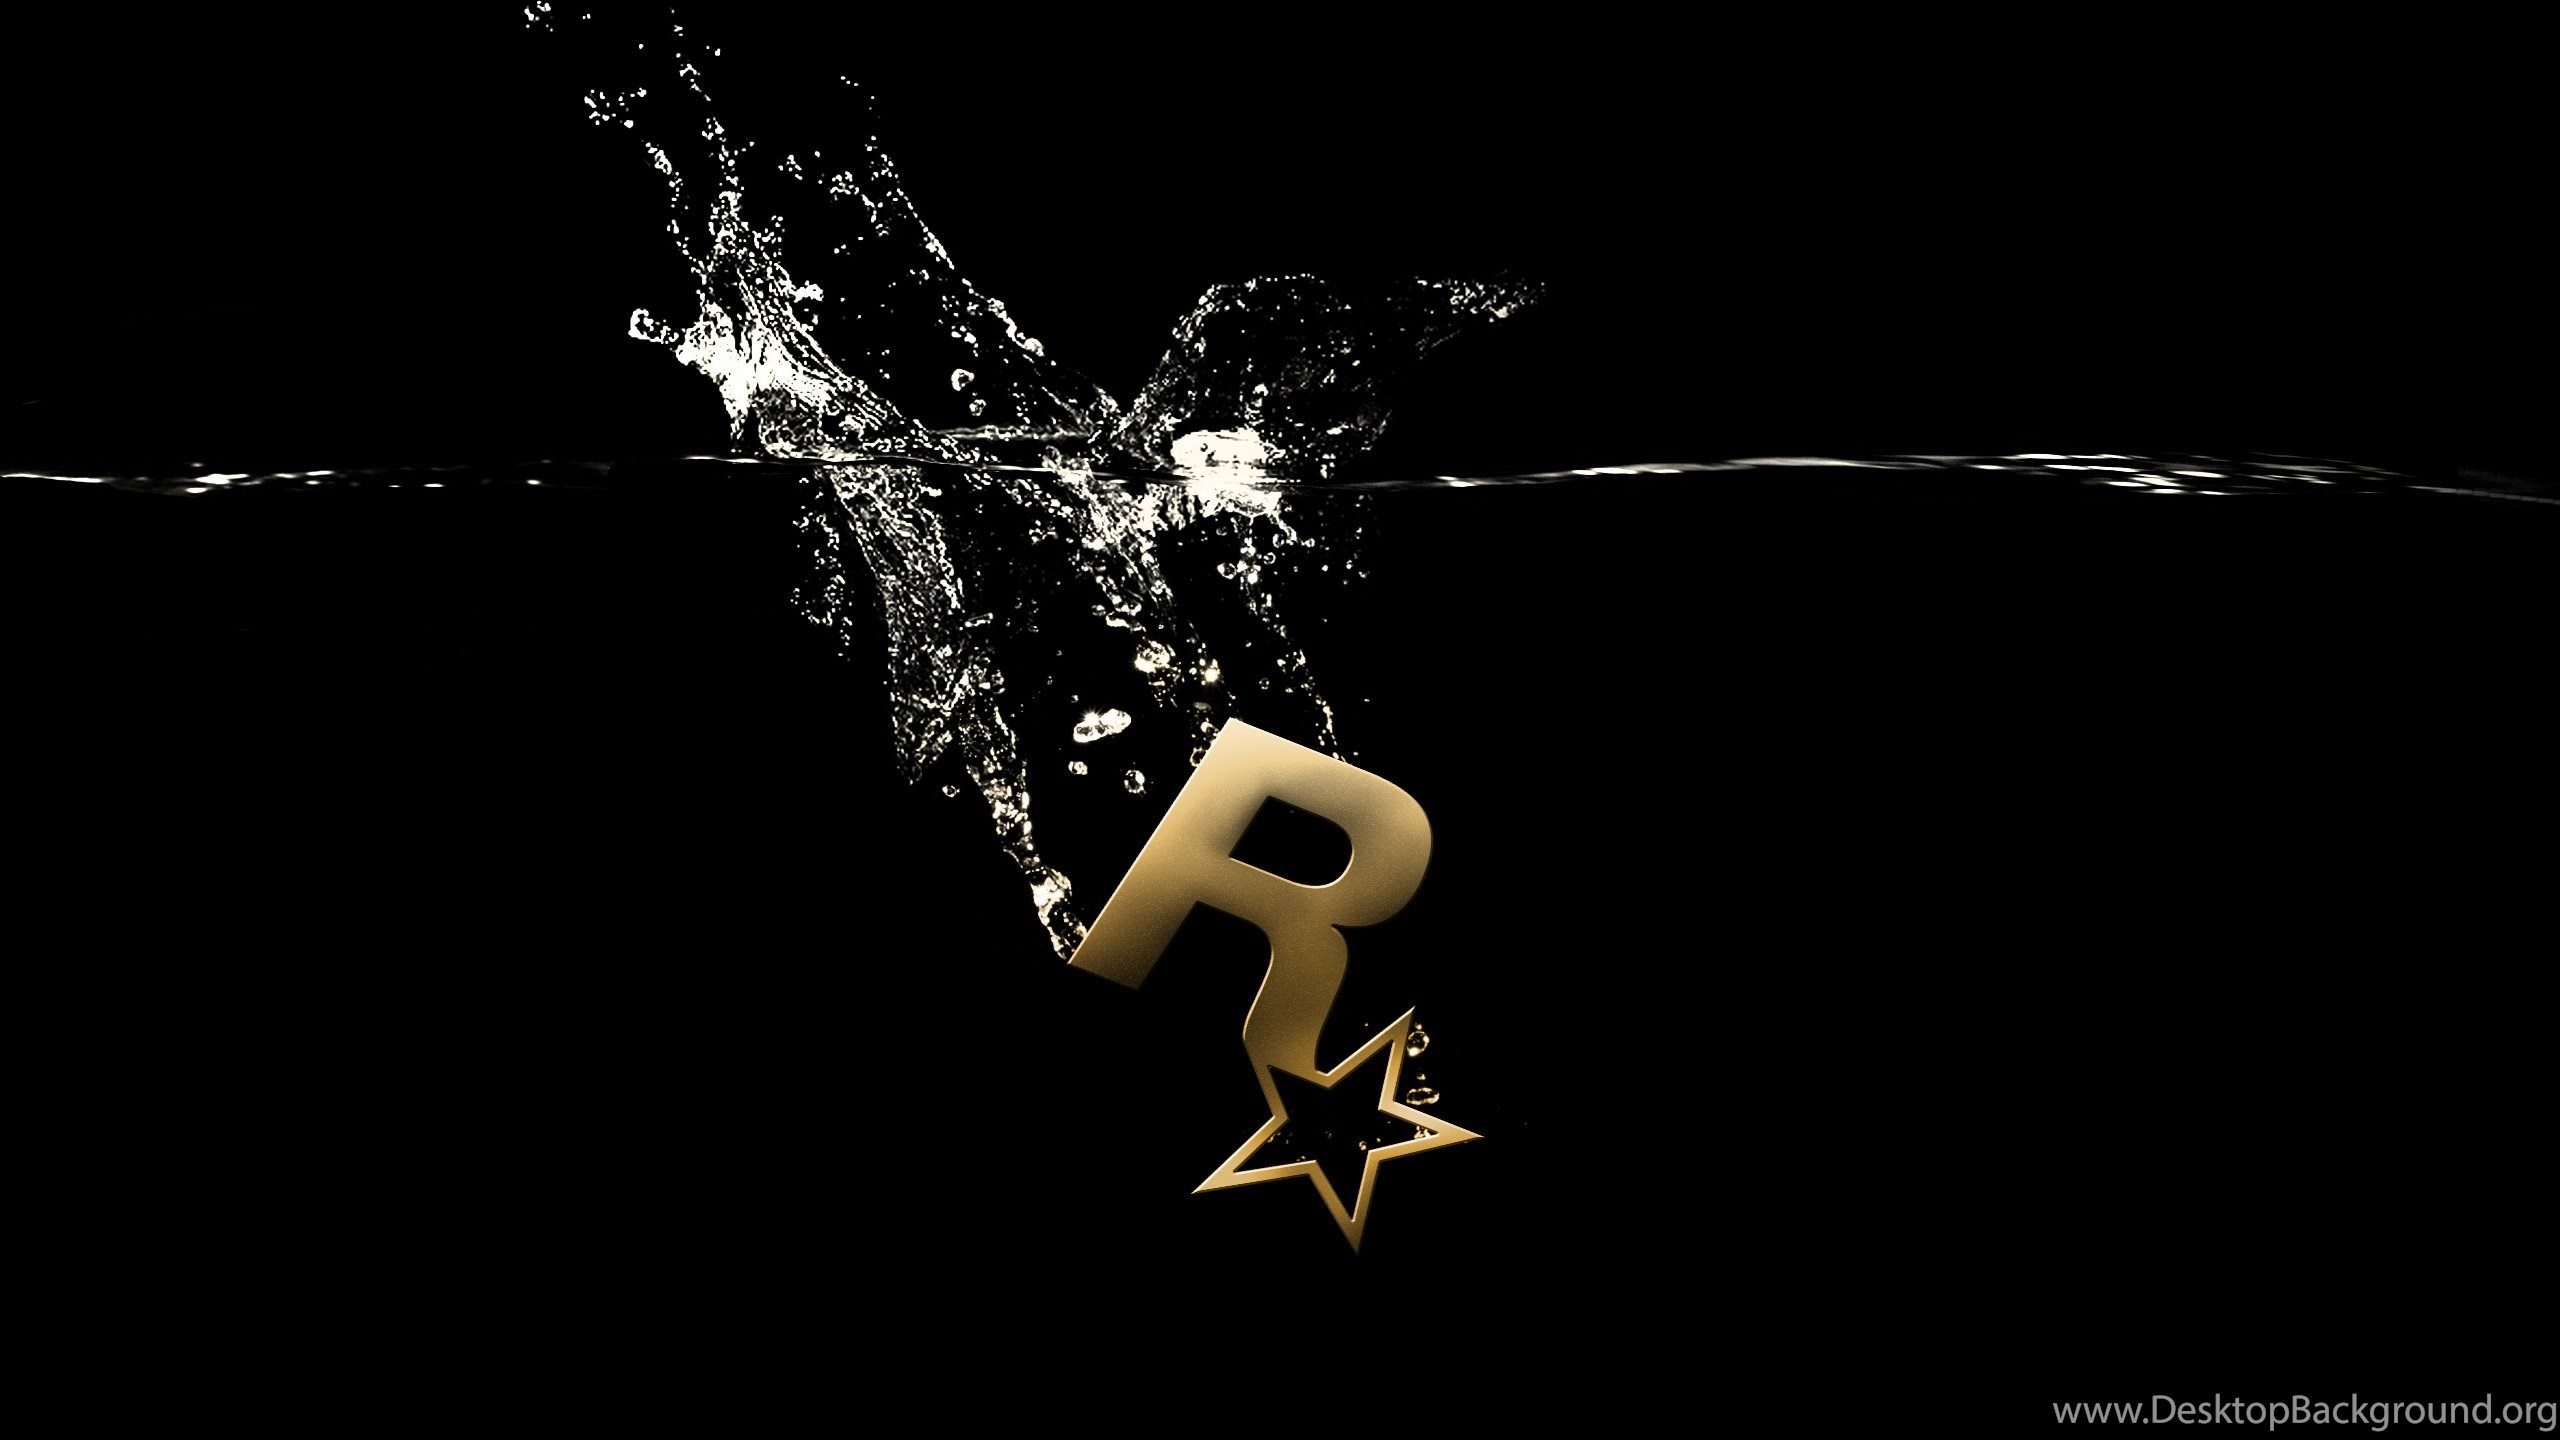 rockstar games logo wallpapers desktop background